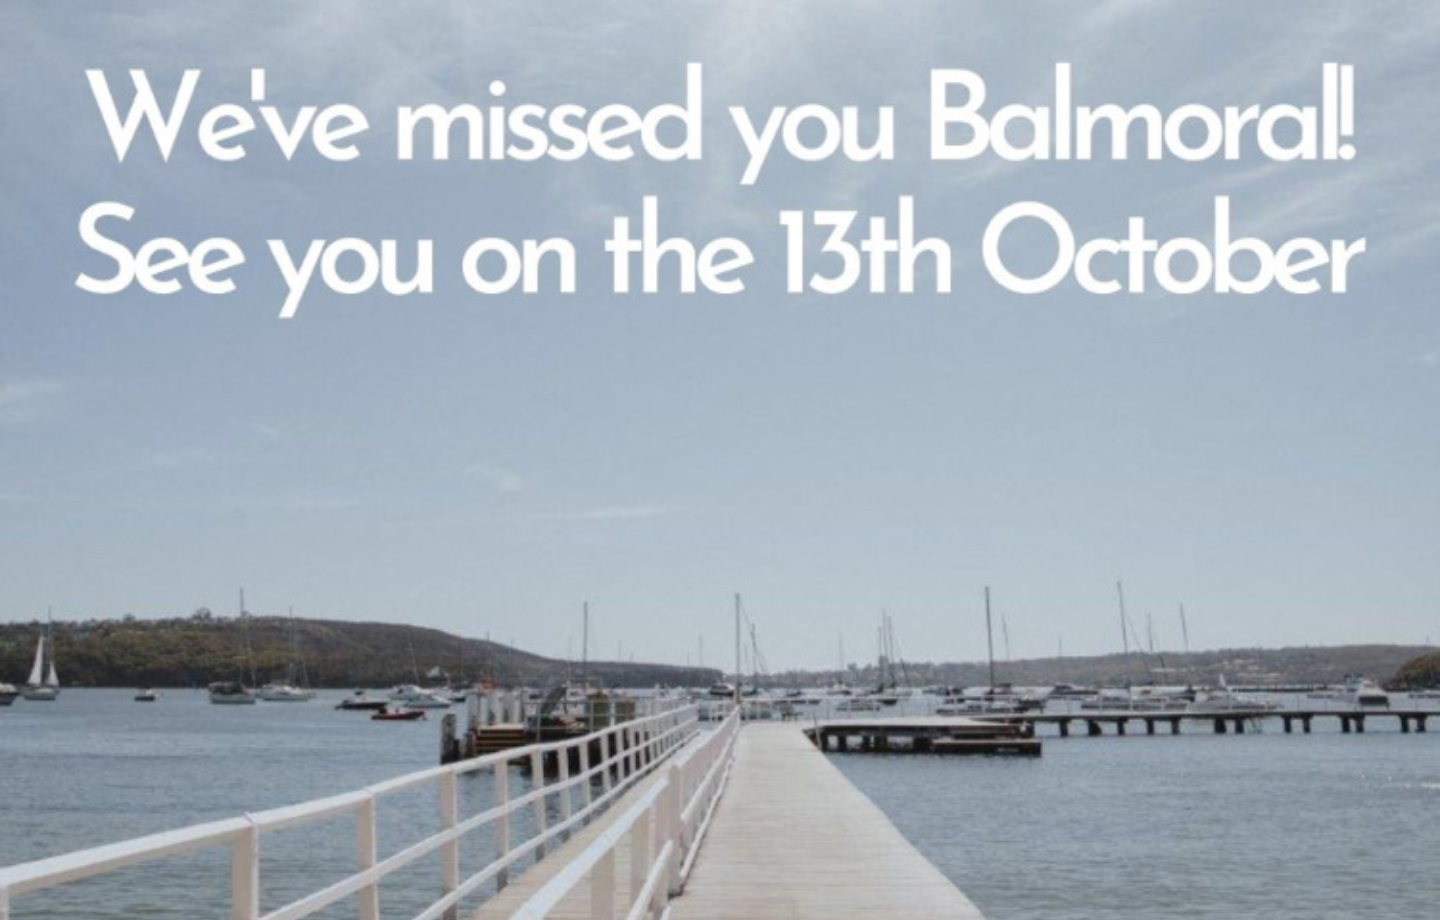 RE-OPENING ON WEDNESDAY 13th OCTOBER 2021